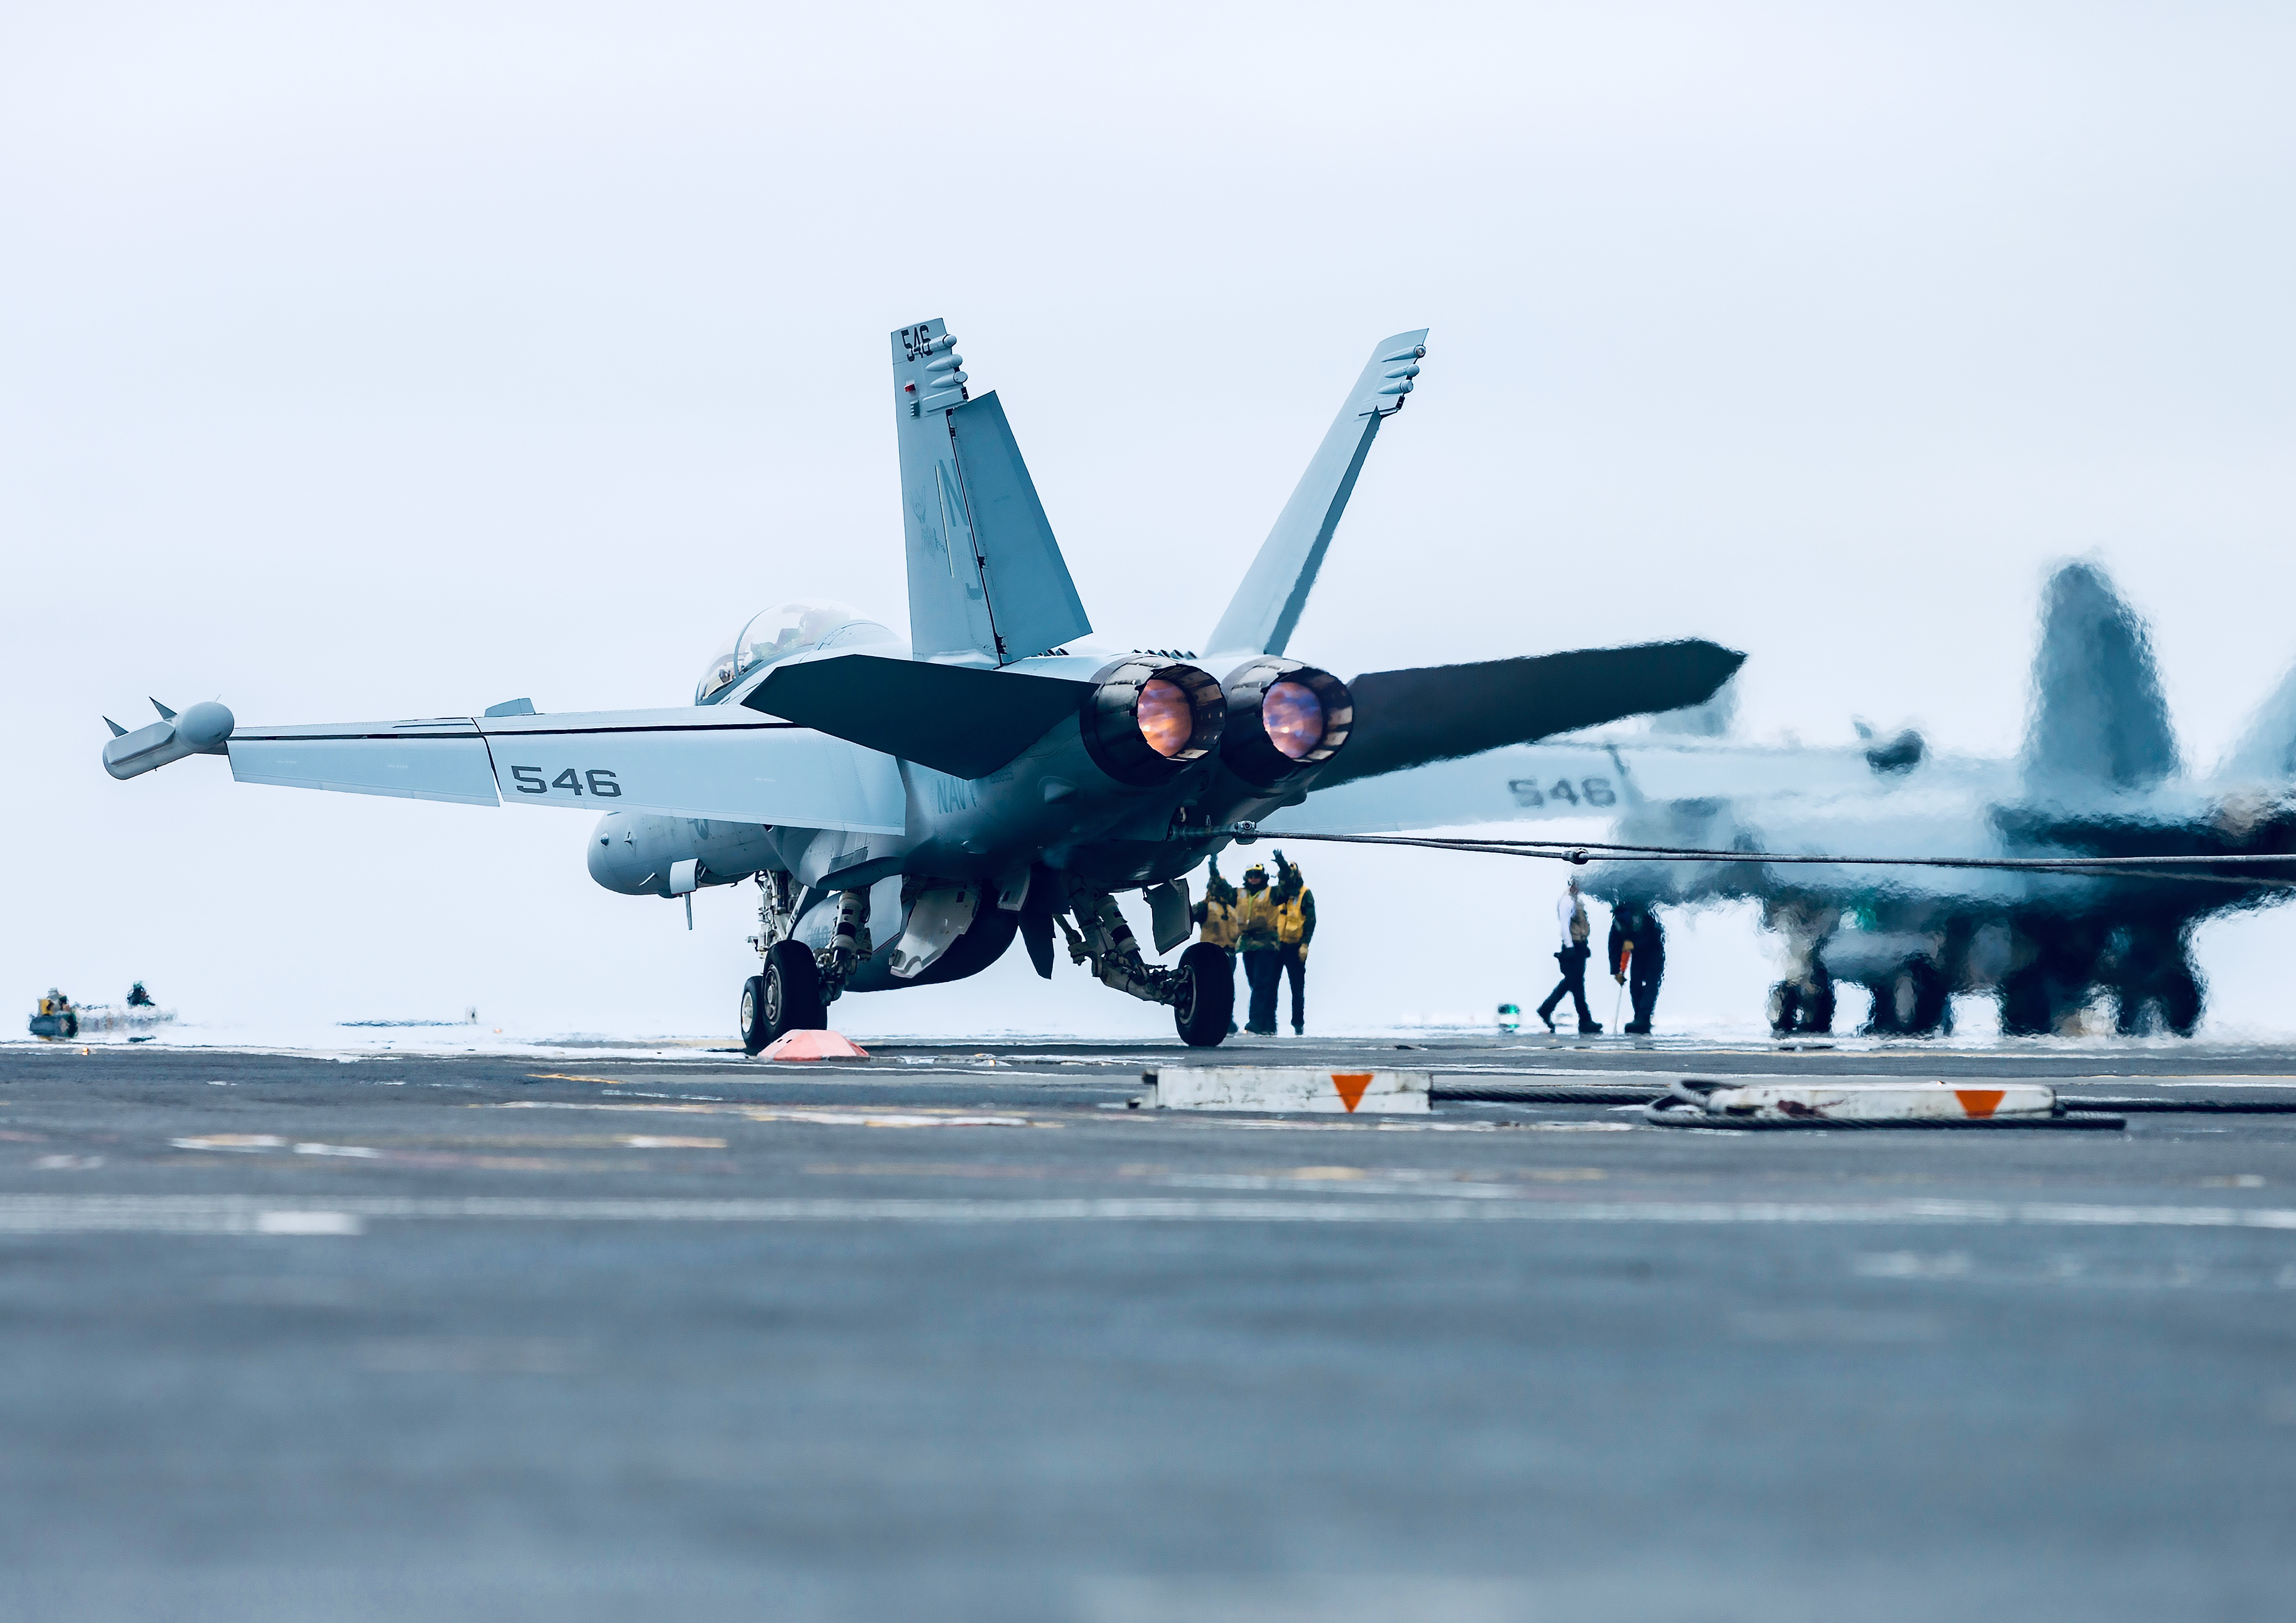 Super Hornet taking off from the deck of USS Carl Vinson, a US Navy aircraft carrier. (Photo credit: Scott Dworkin)